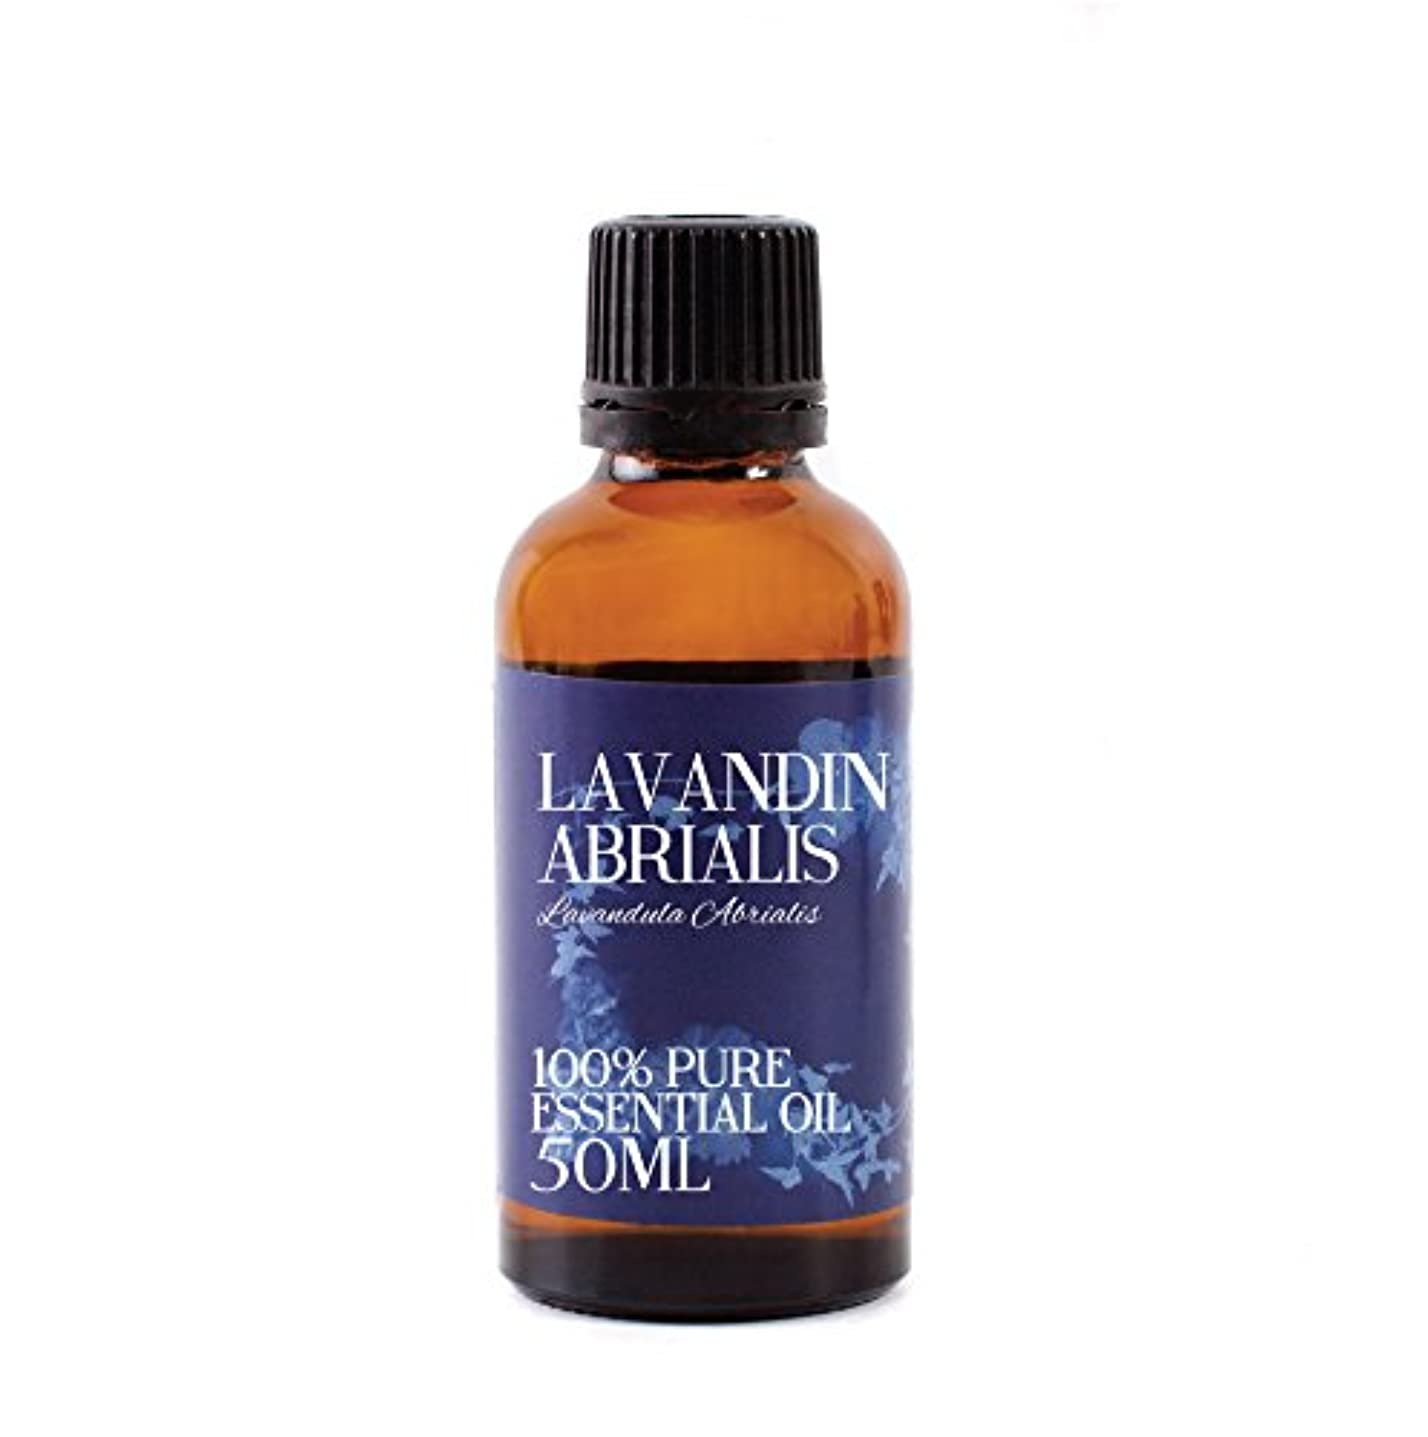 感じる鉄道平等Mystic Moments | Lavandin Abrialis Essential Oil - 50ml - 100% Pure